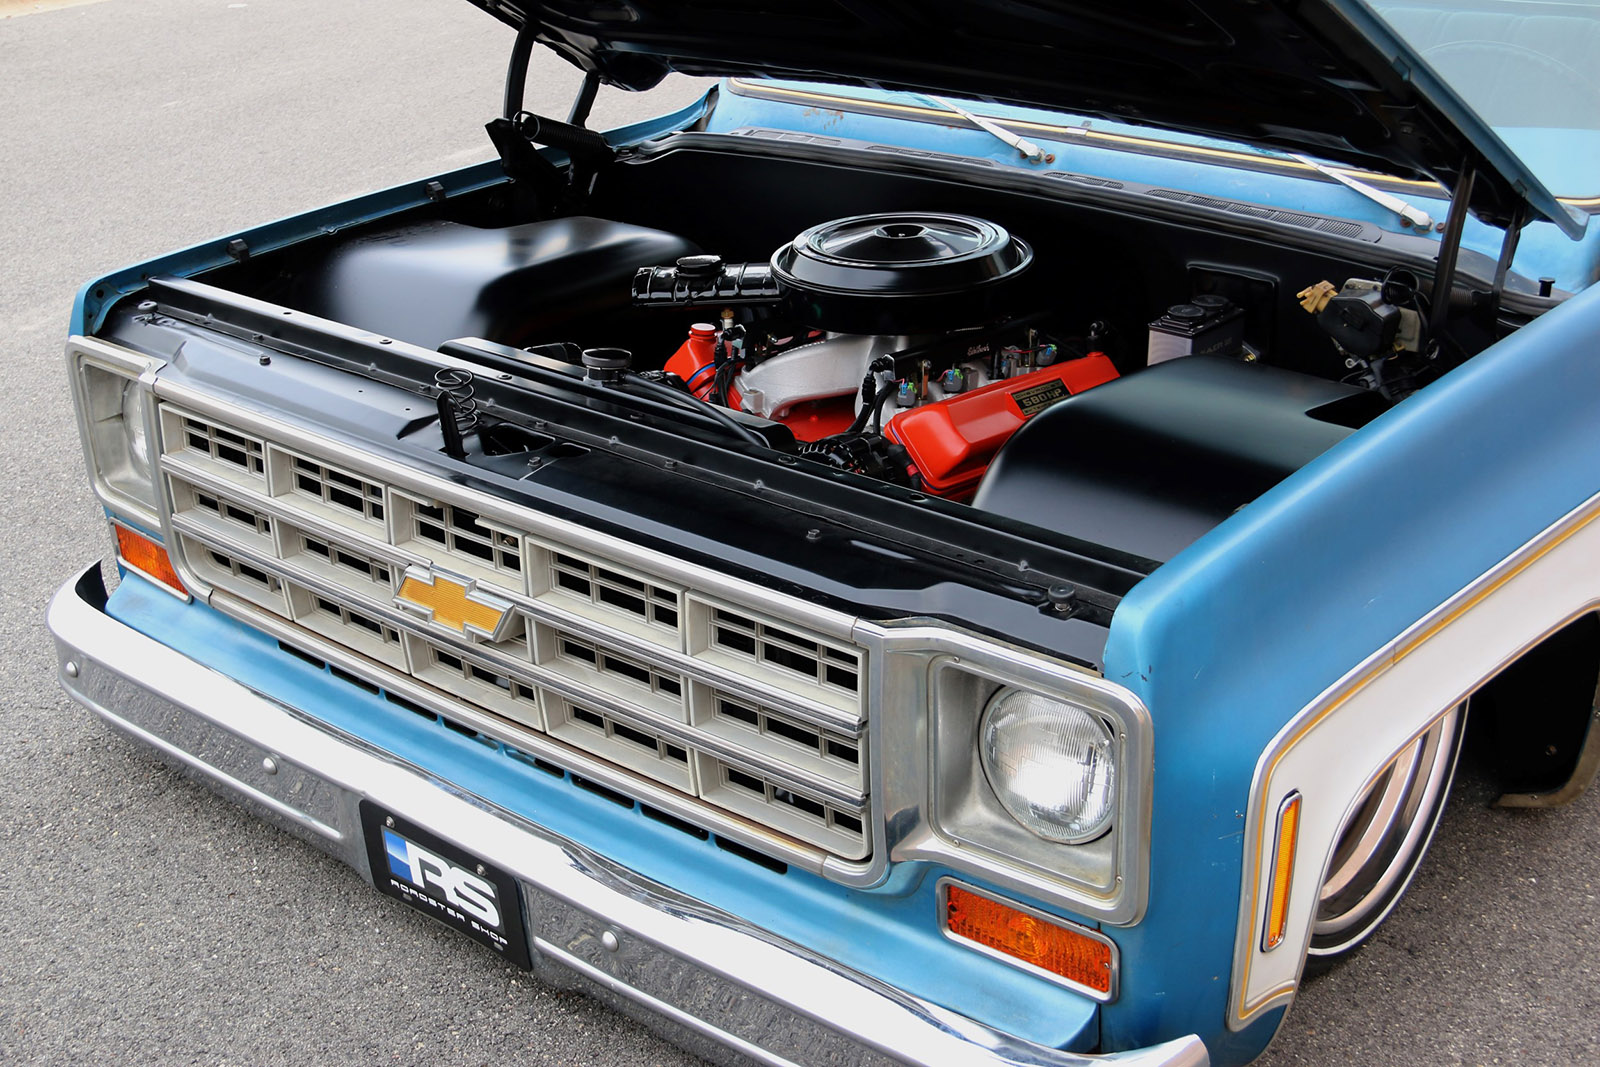 All Chevy 1976 chevy c10 : Chevy C10 with a 408 ci LSx - engineswapdepot.com